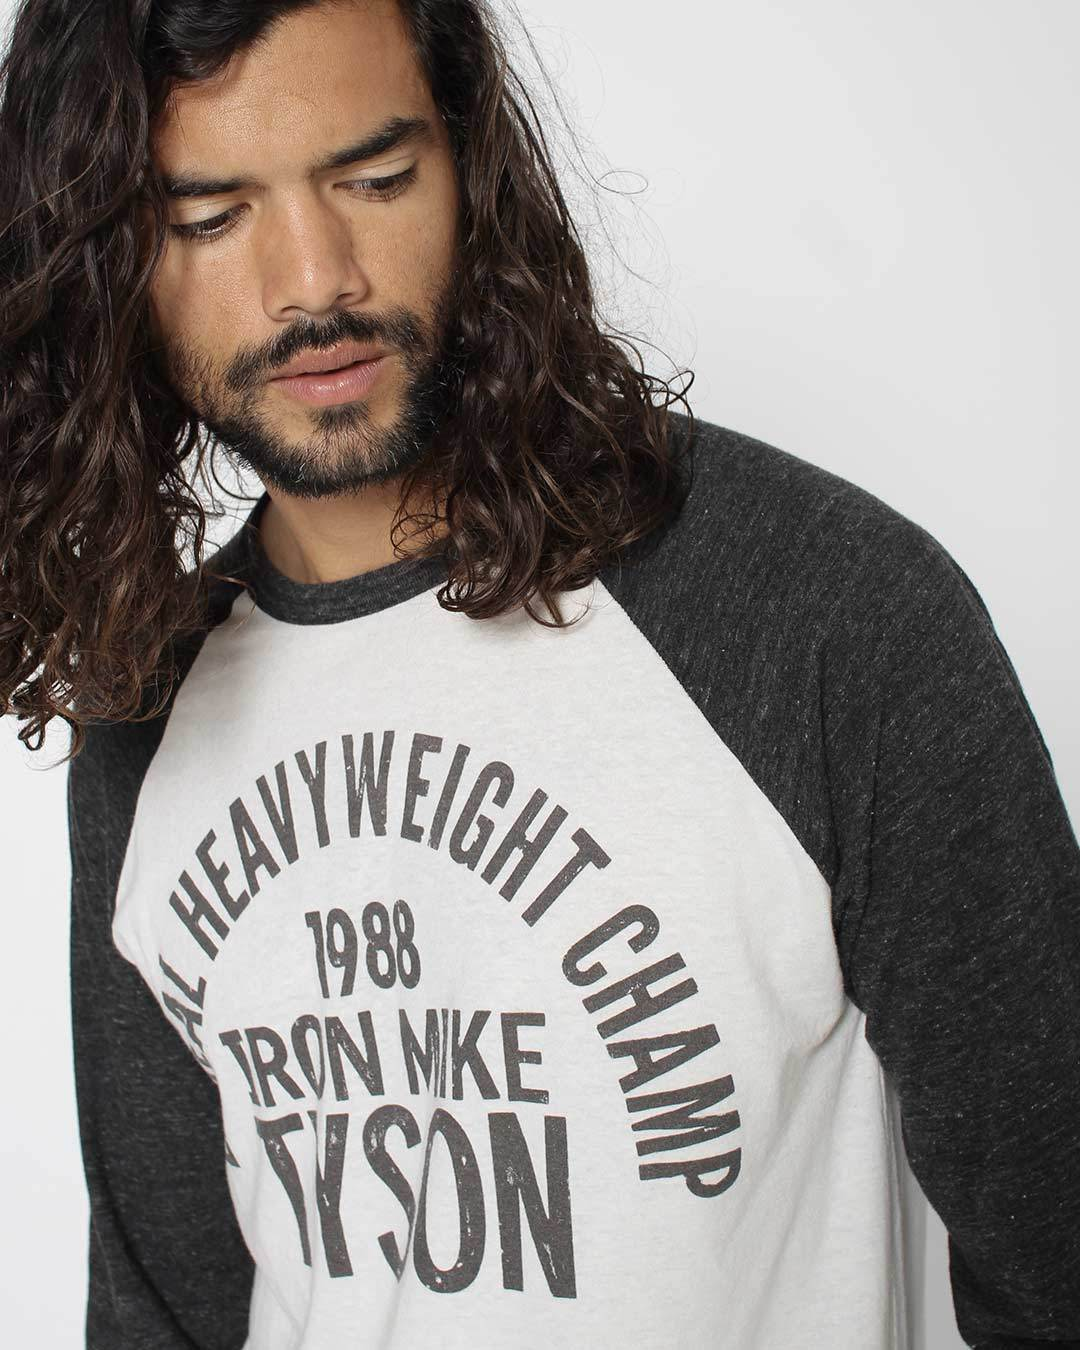 Iron Mike Tyson 1988 Raglan